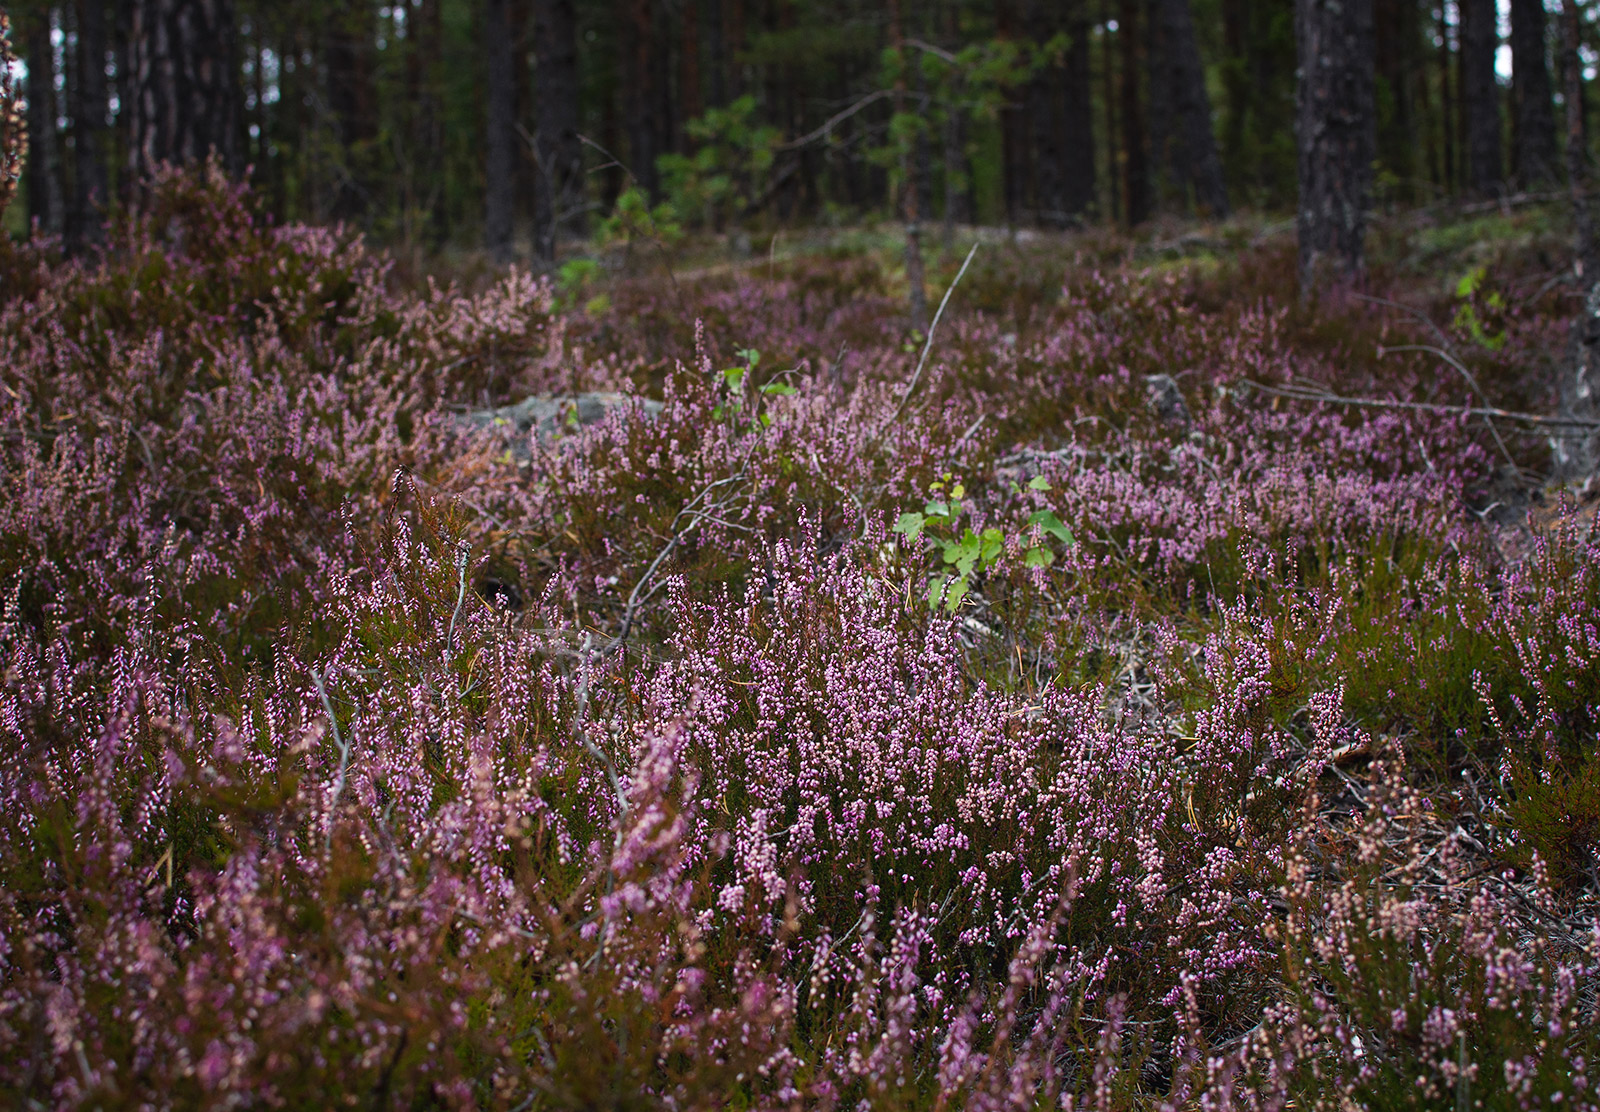 Swathes of pink heather